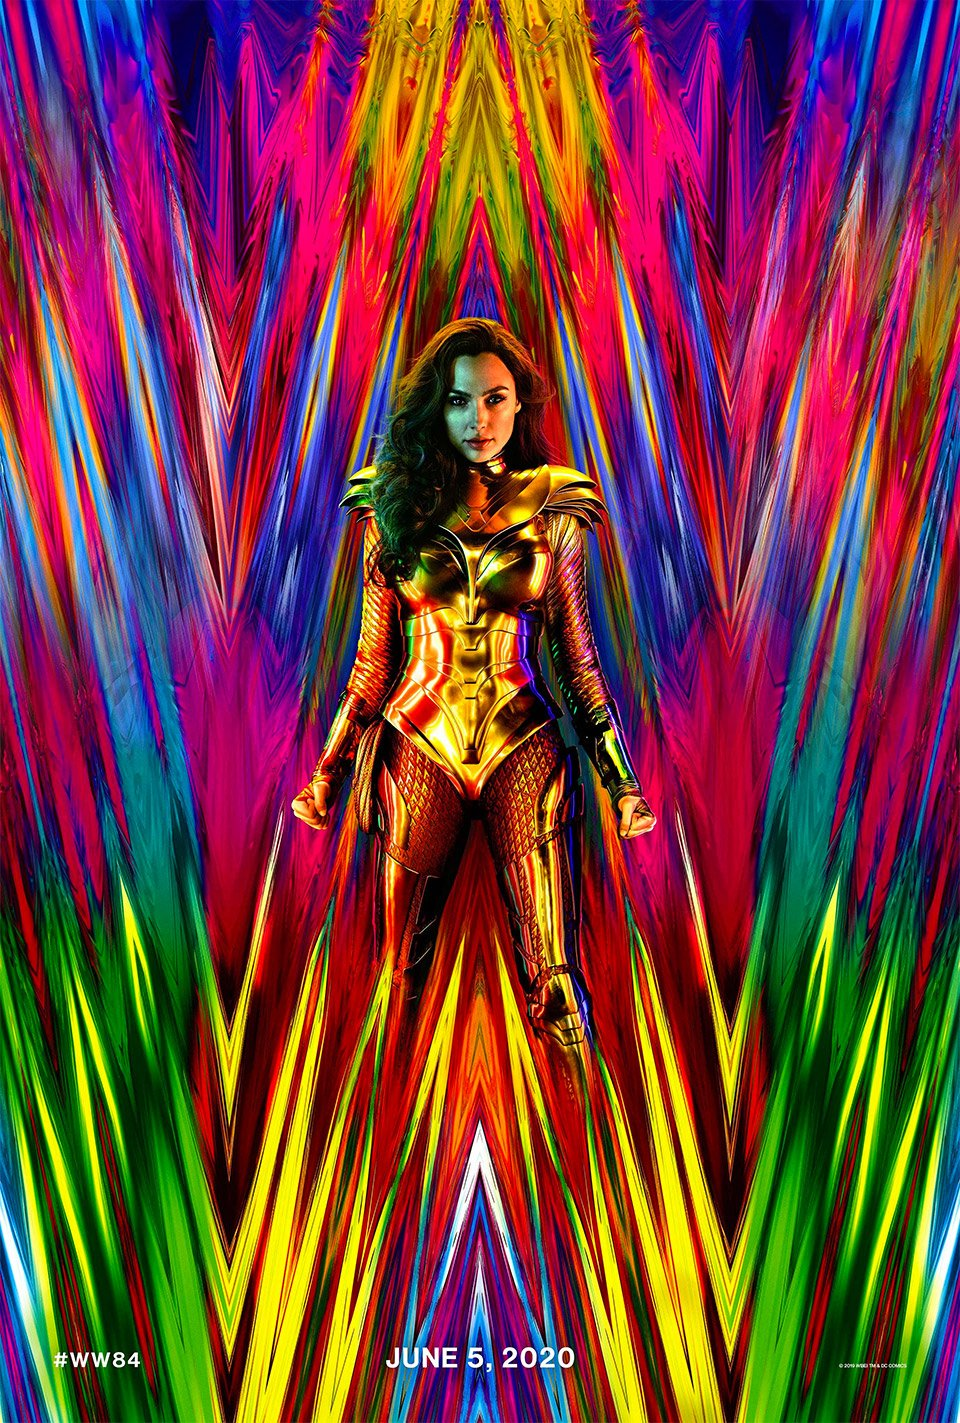 Wonder Woman 1984 (Trailer)